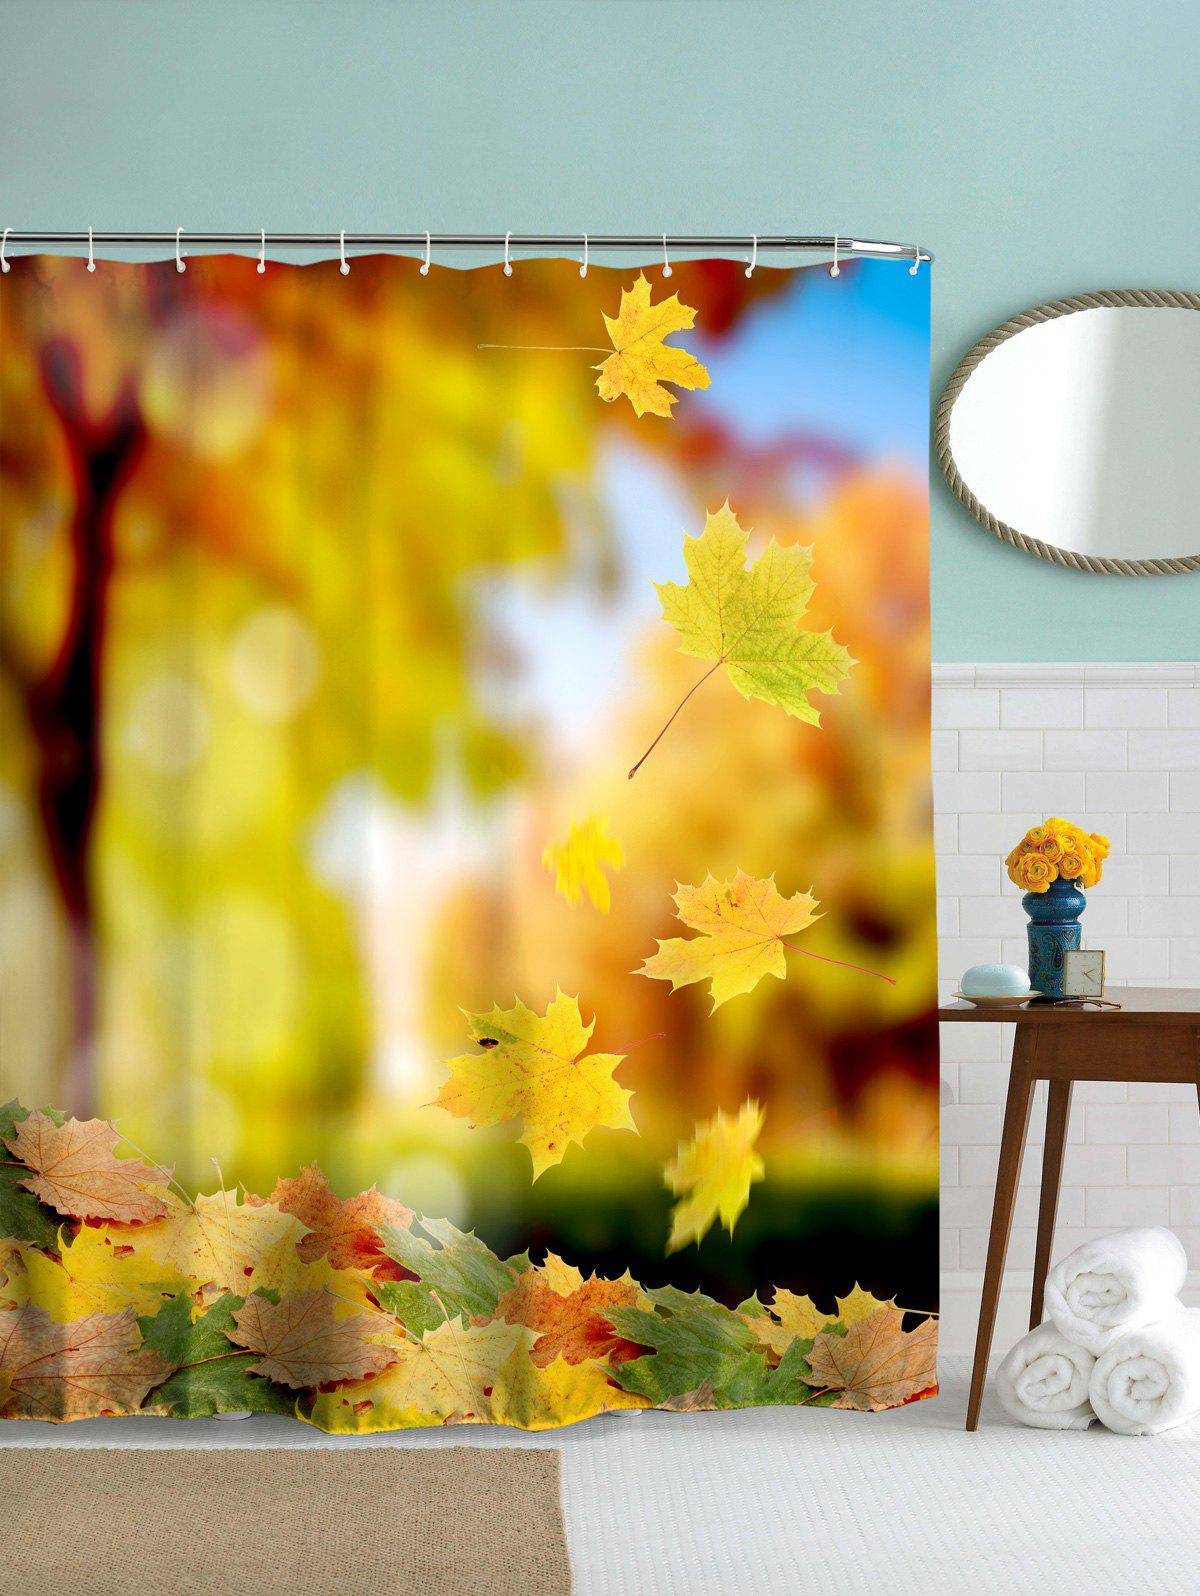 Waterproof Mouldproof Maple Leaves Print Shower Curtain watercolor shell mouldproof bath shower curtain